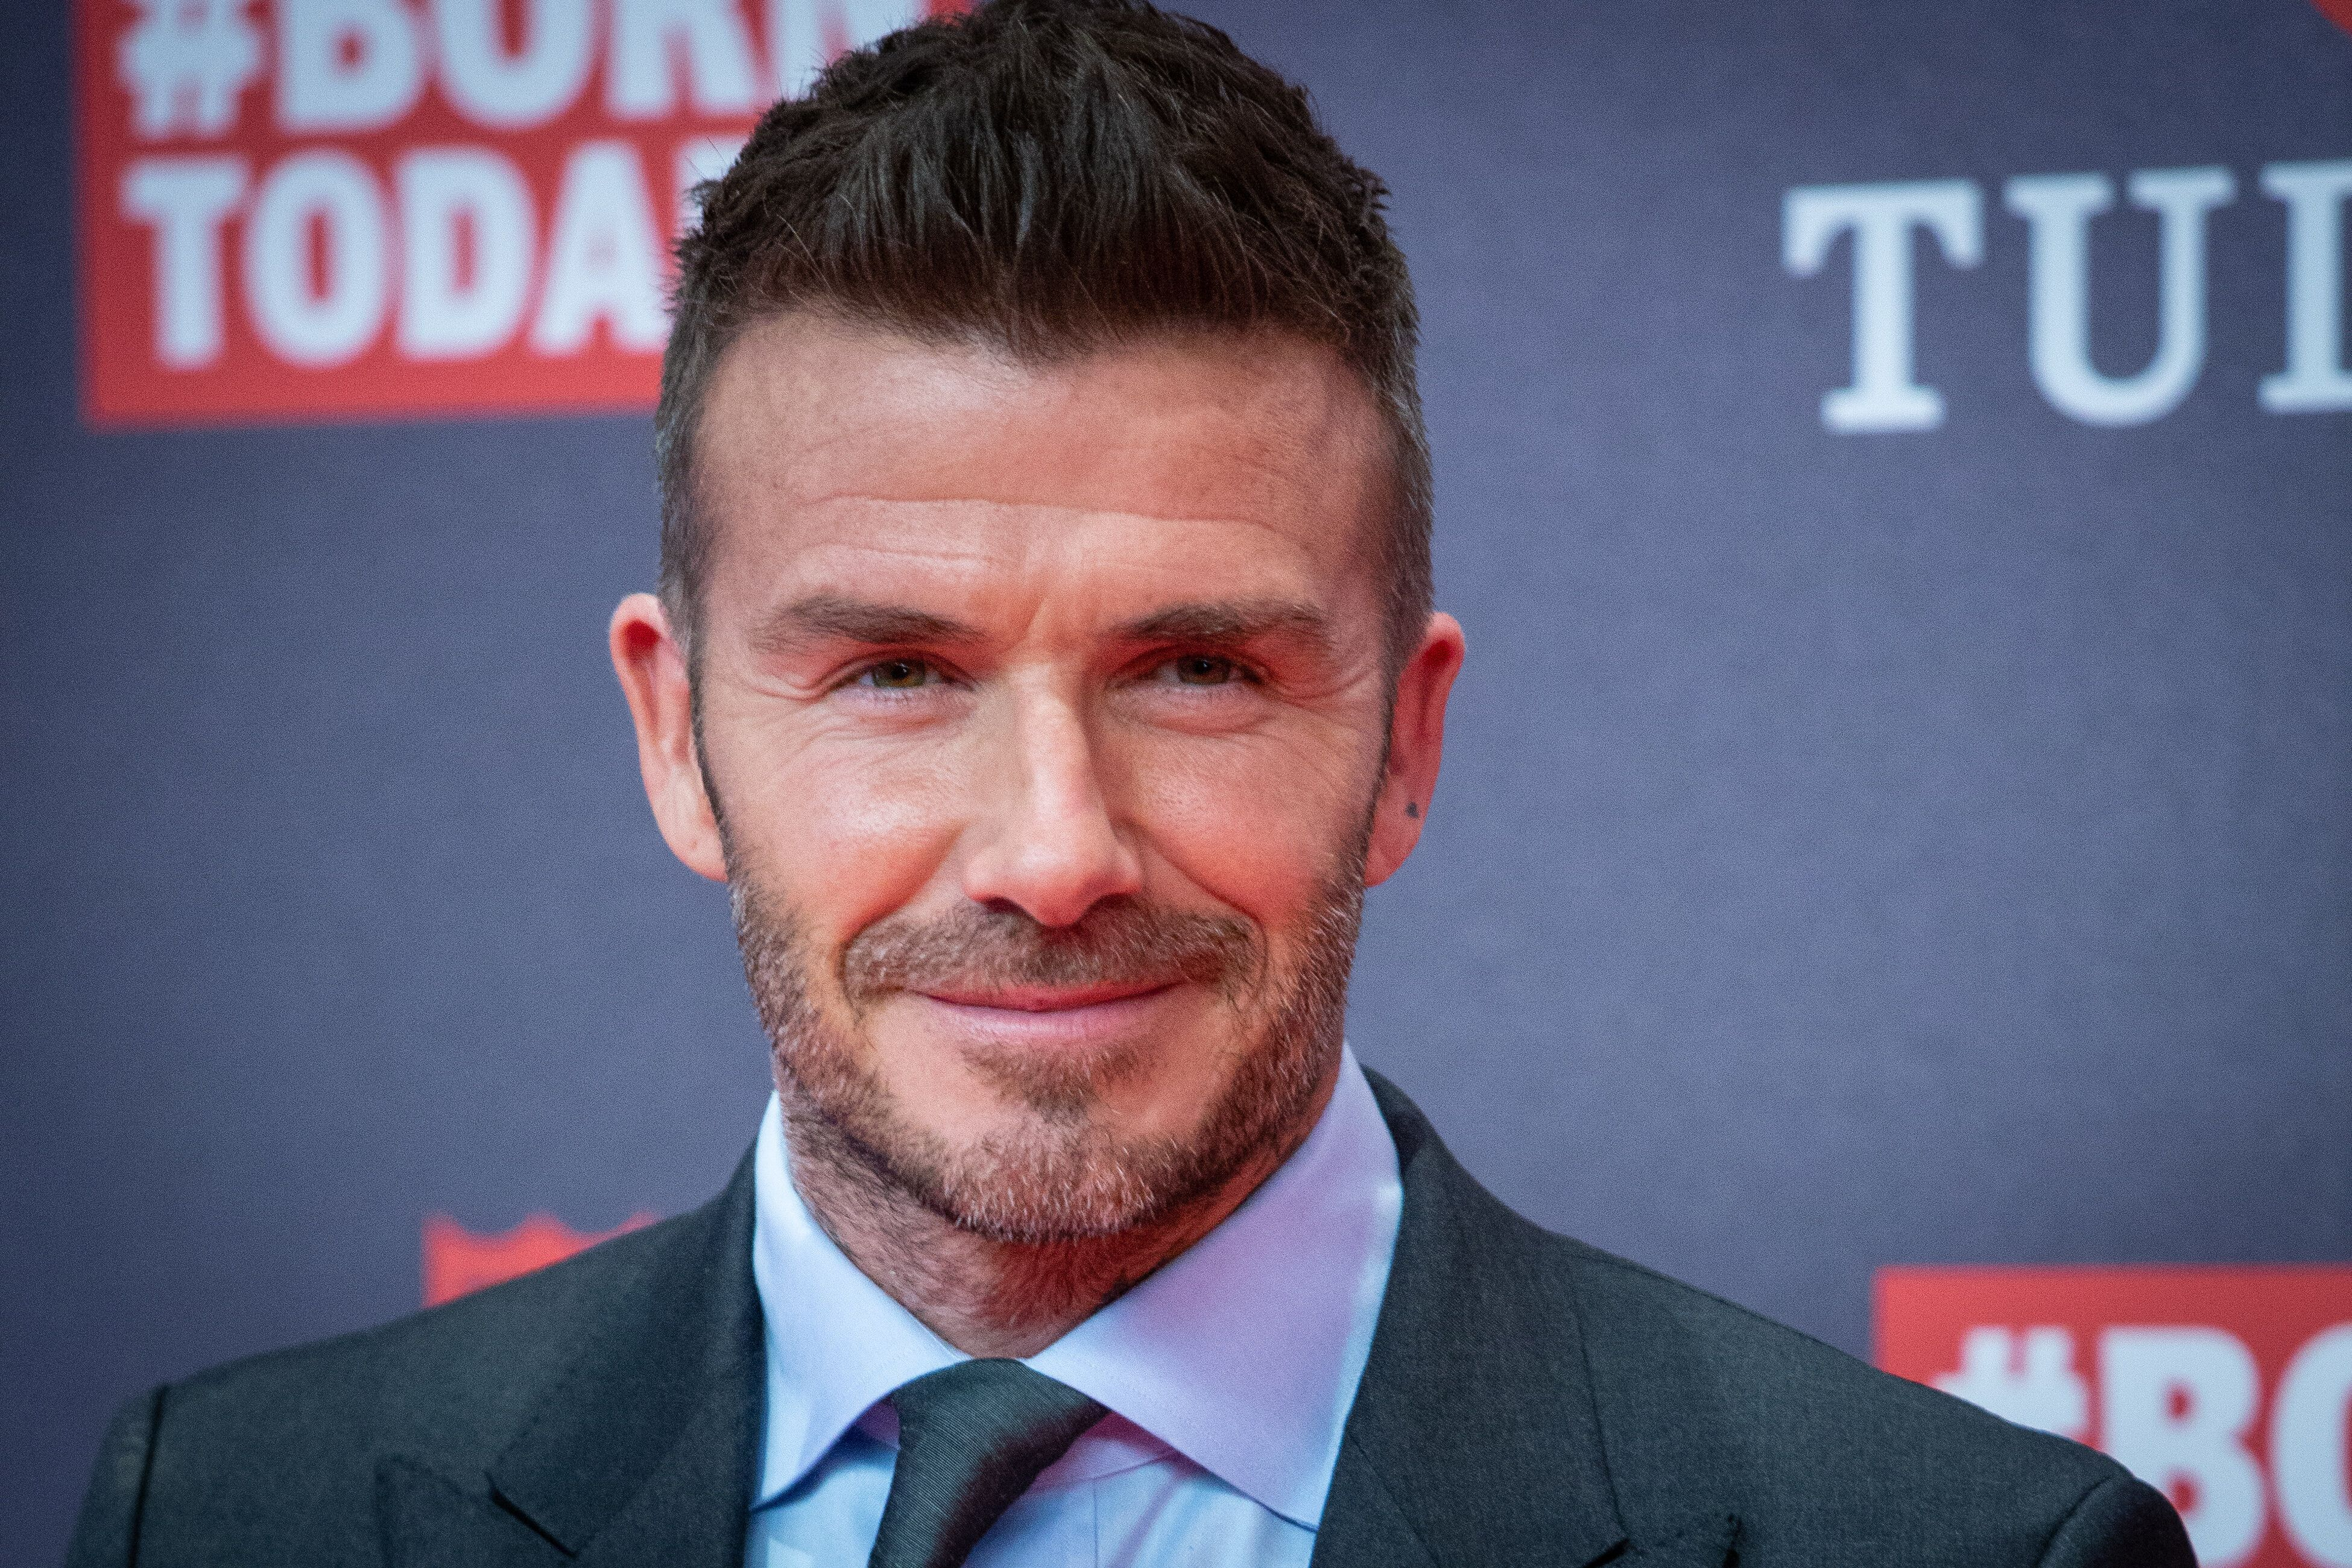 David Beckham has three sons and a daughter.